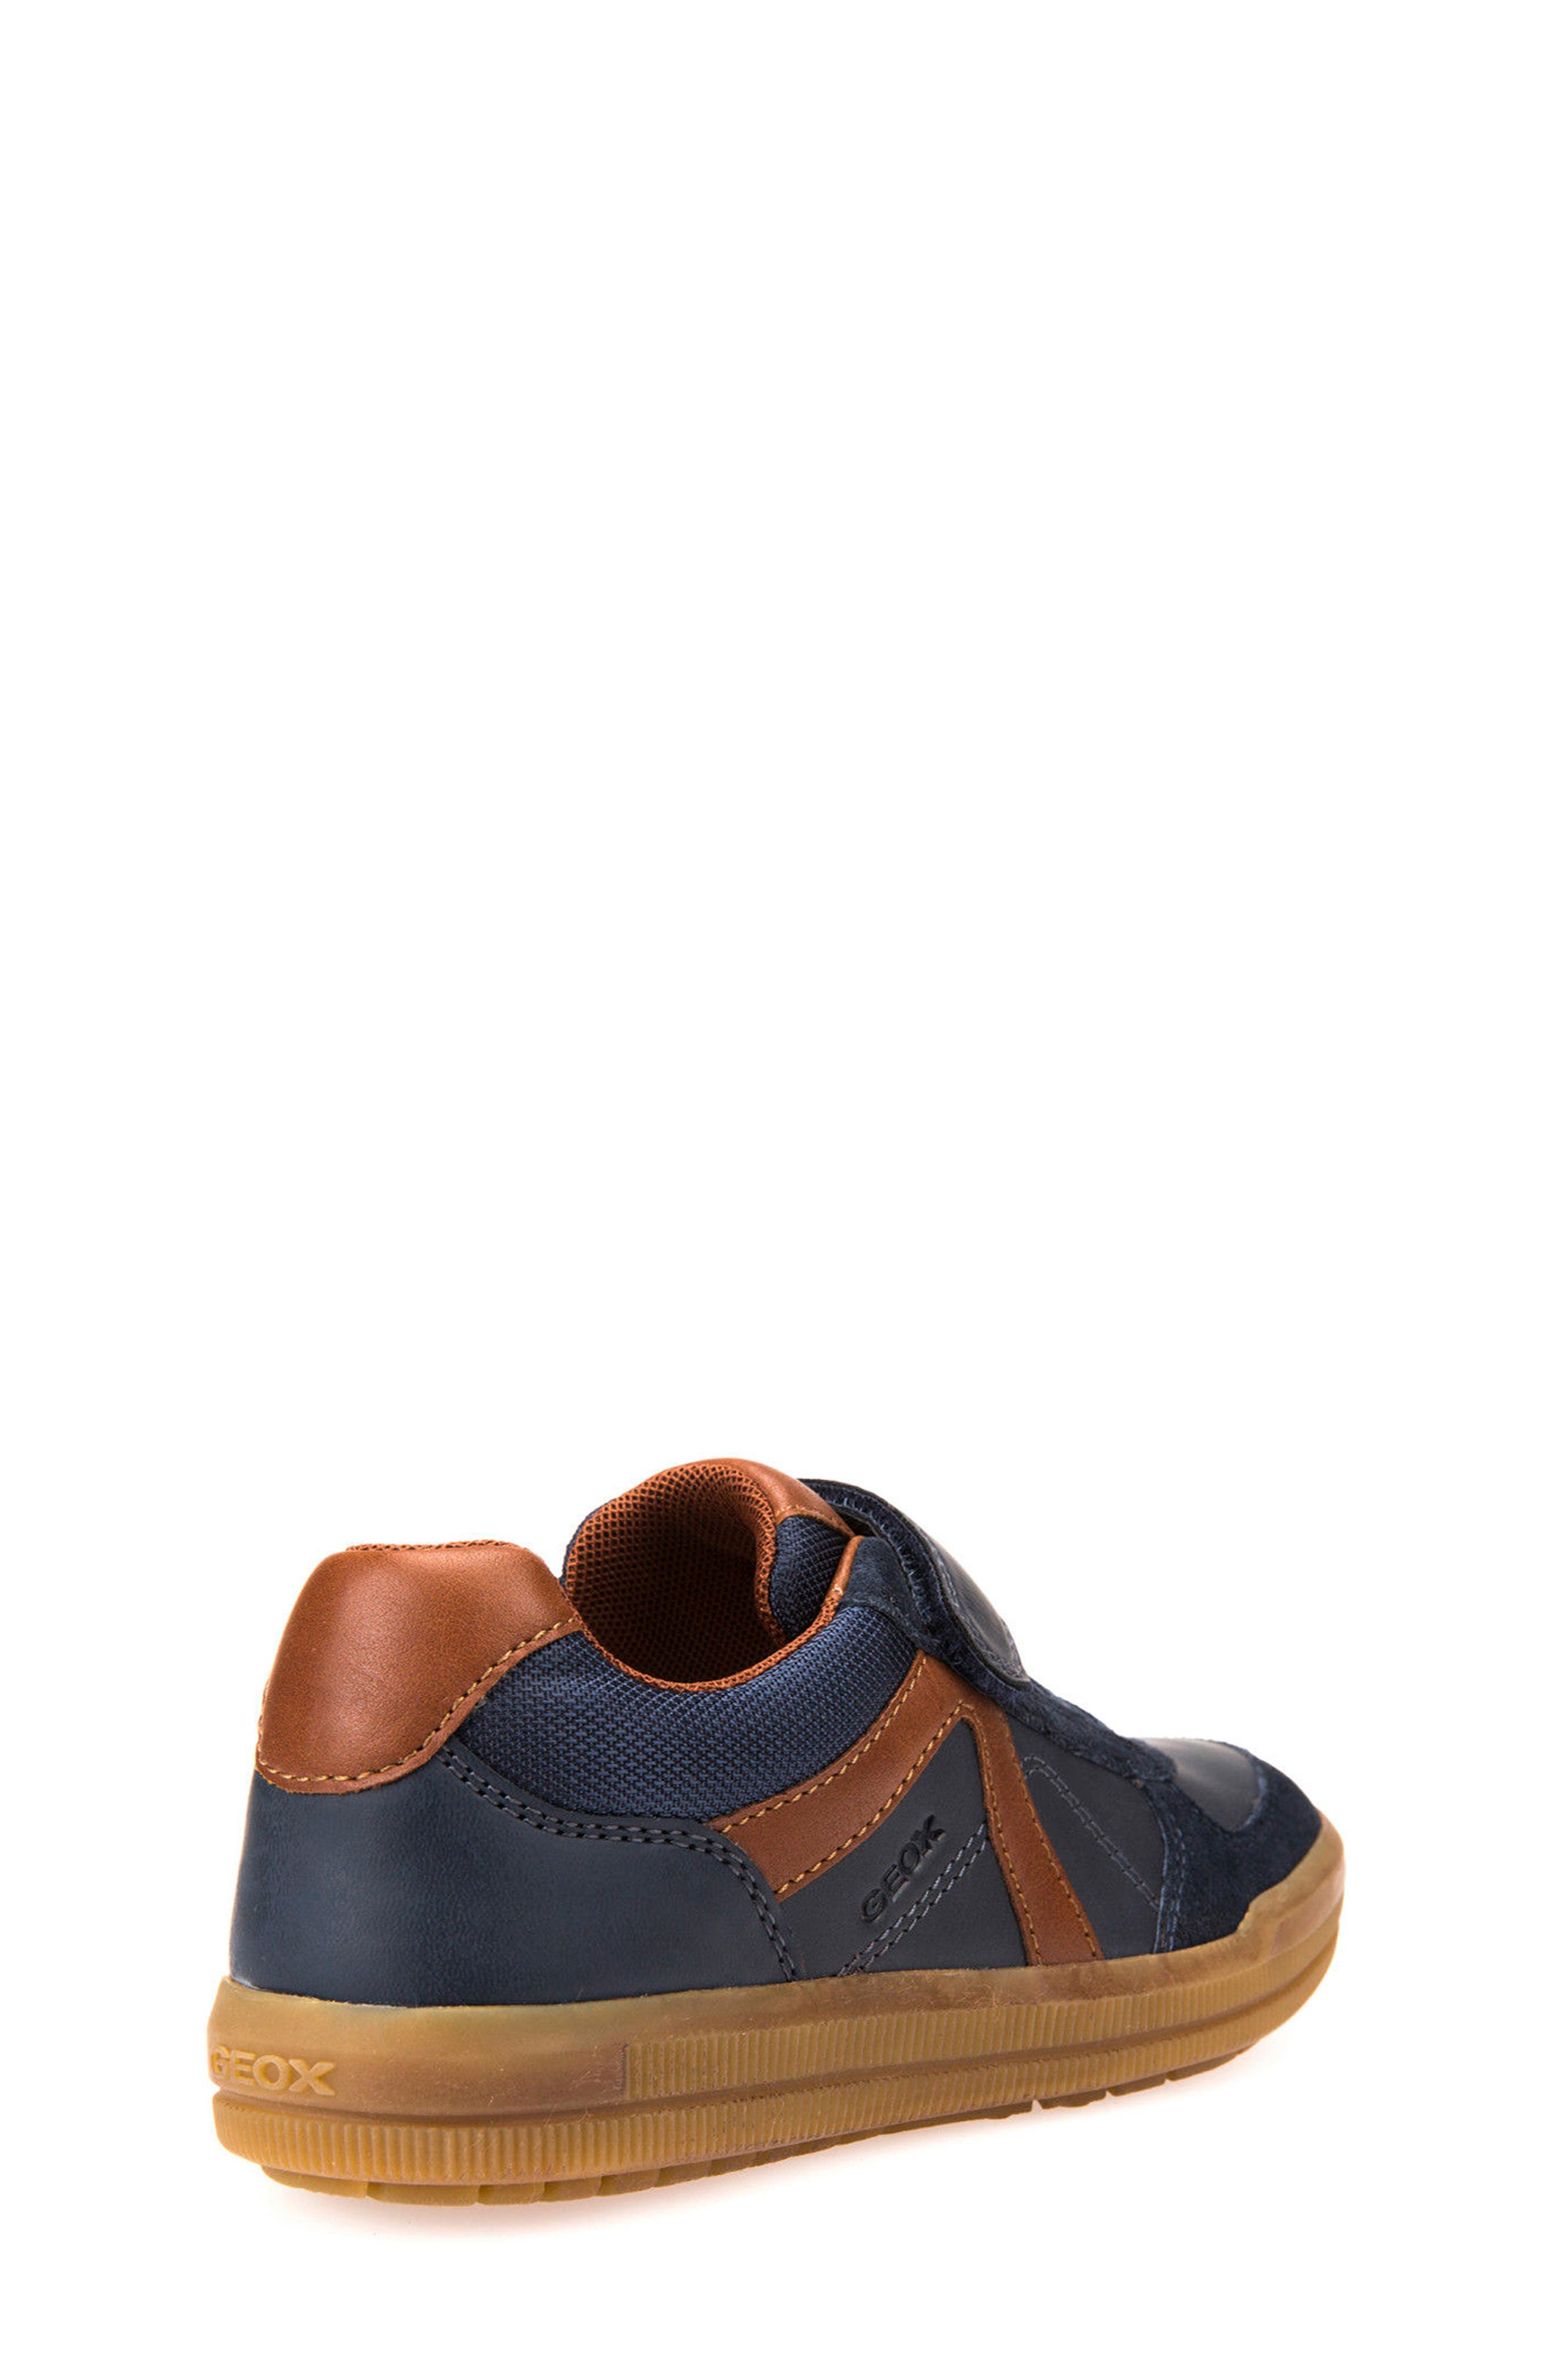 Arzach Low Top Sneaker,                             Alternate thumbnail 2, color,                             NAVY/ BROWN